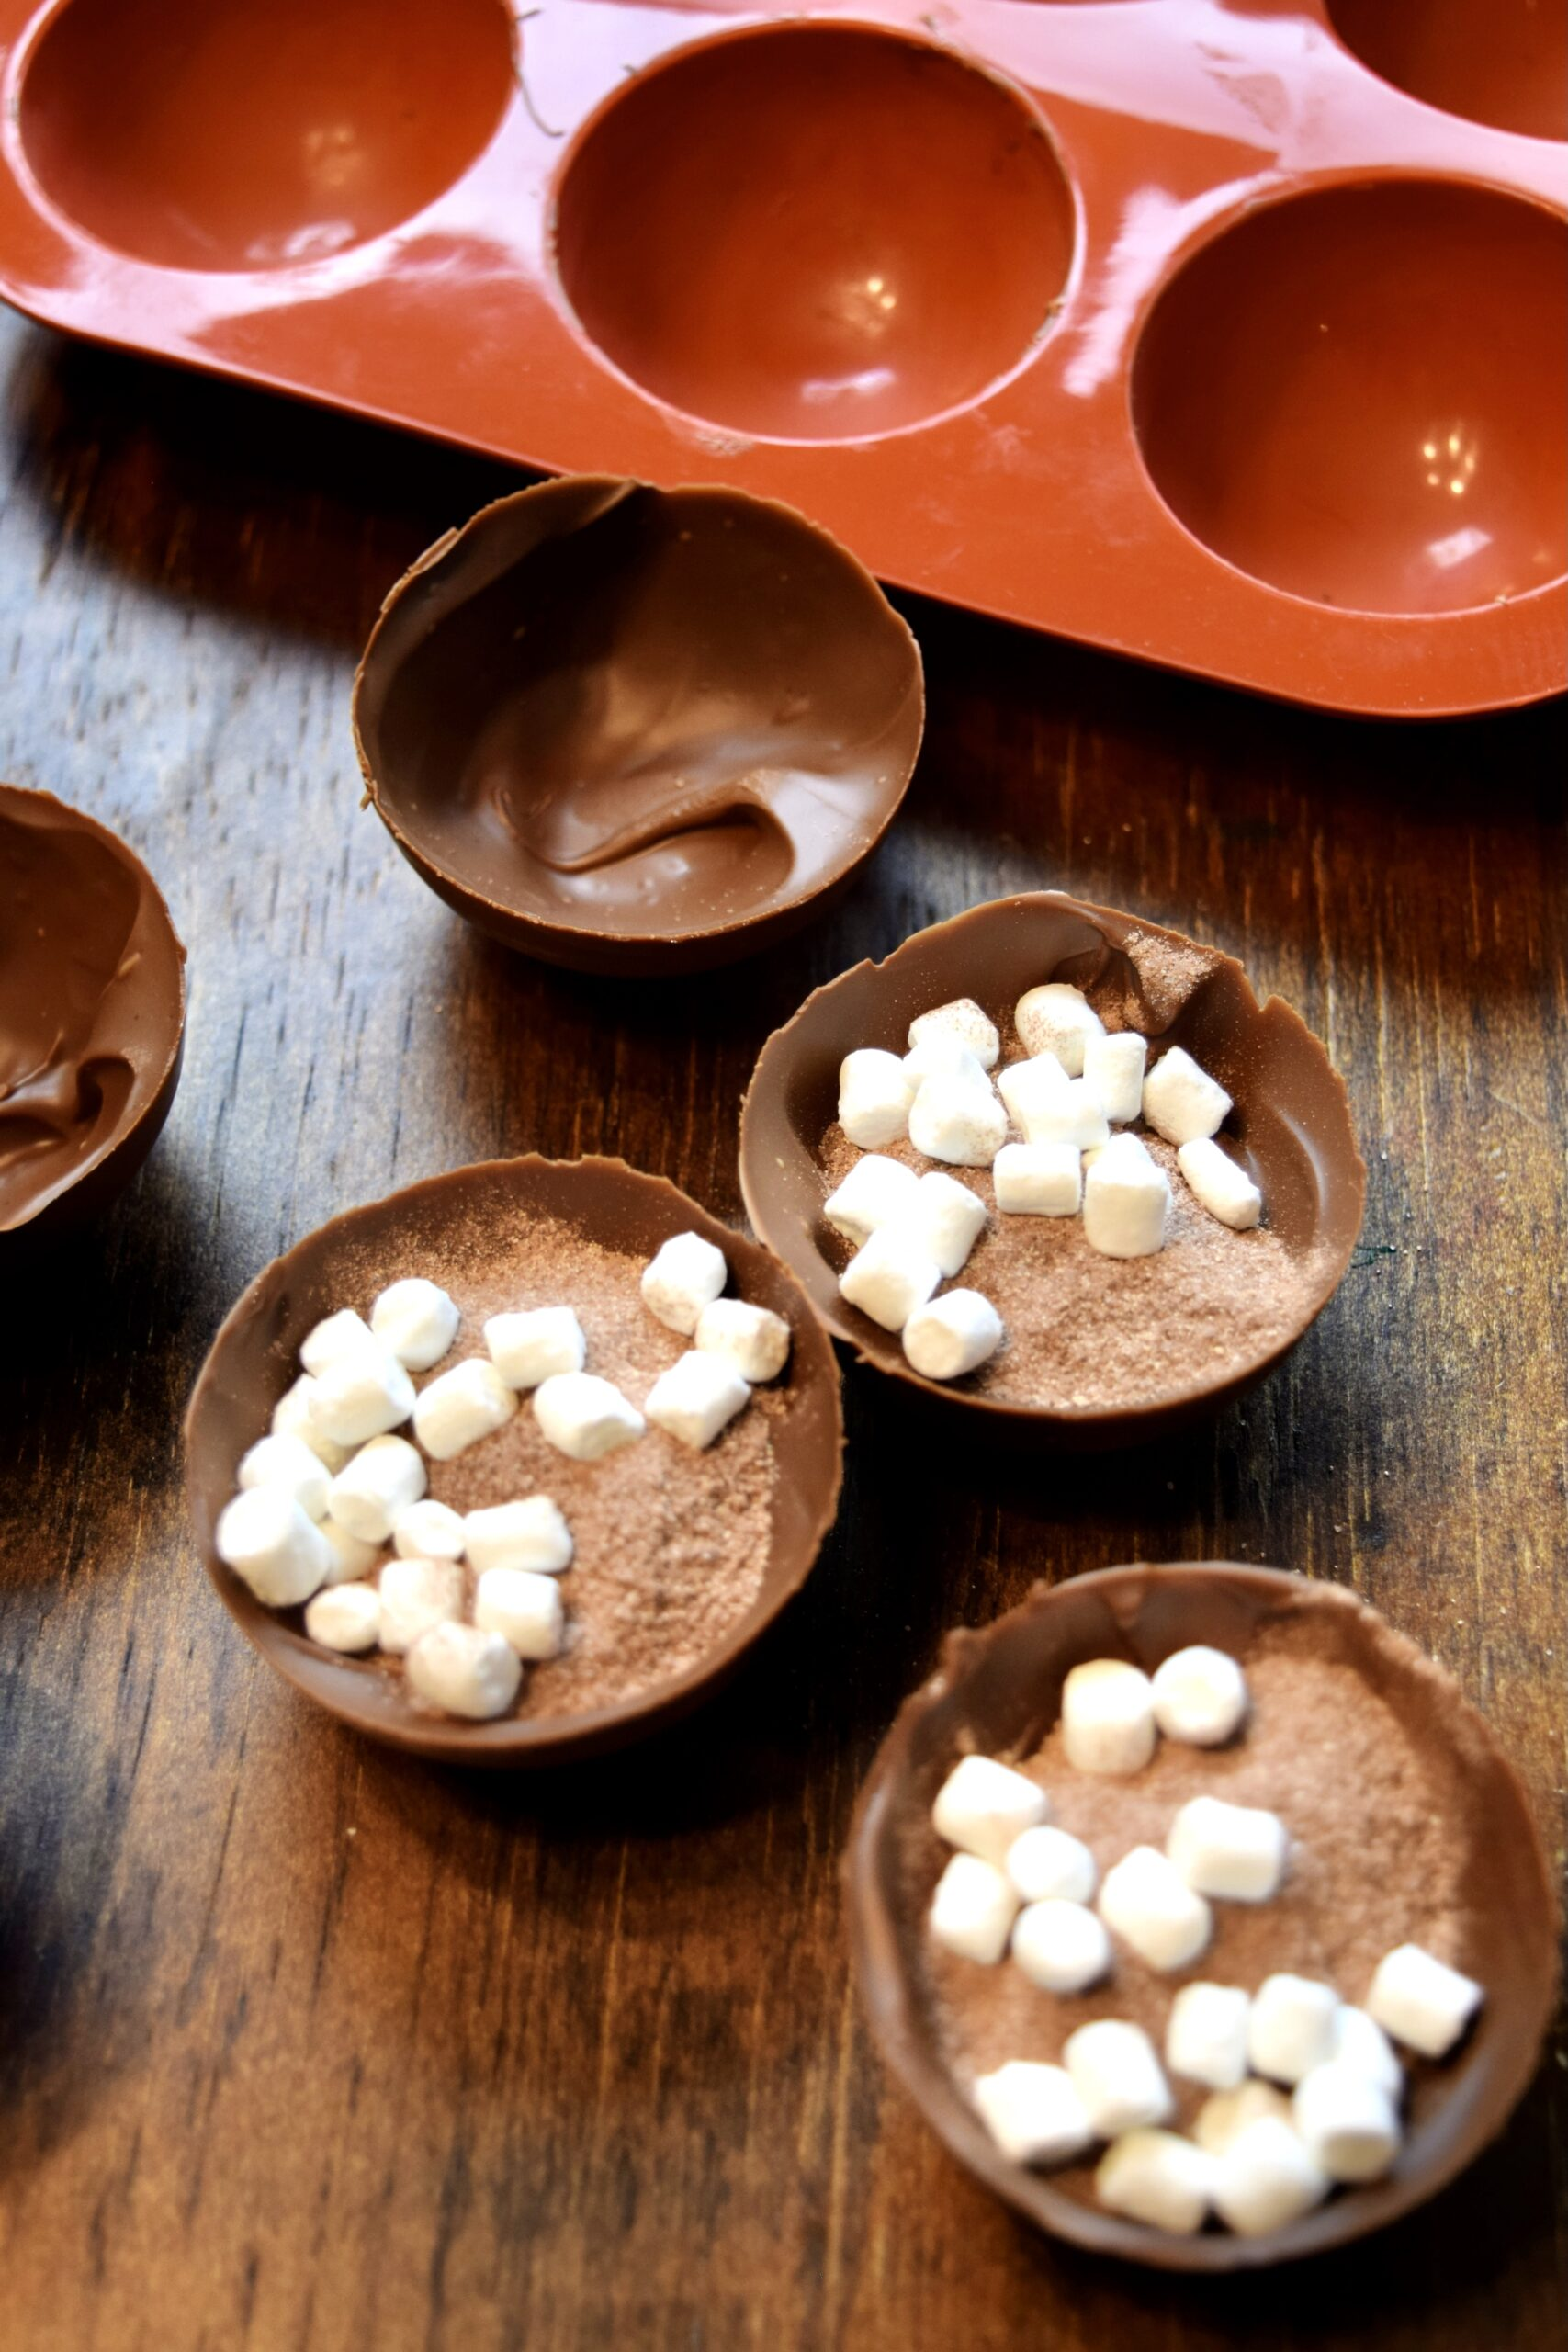 fill the chocolate halves with hot chocolate powder and mini marshmallows